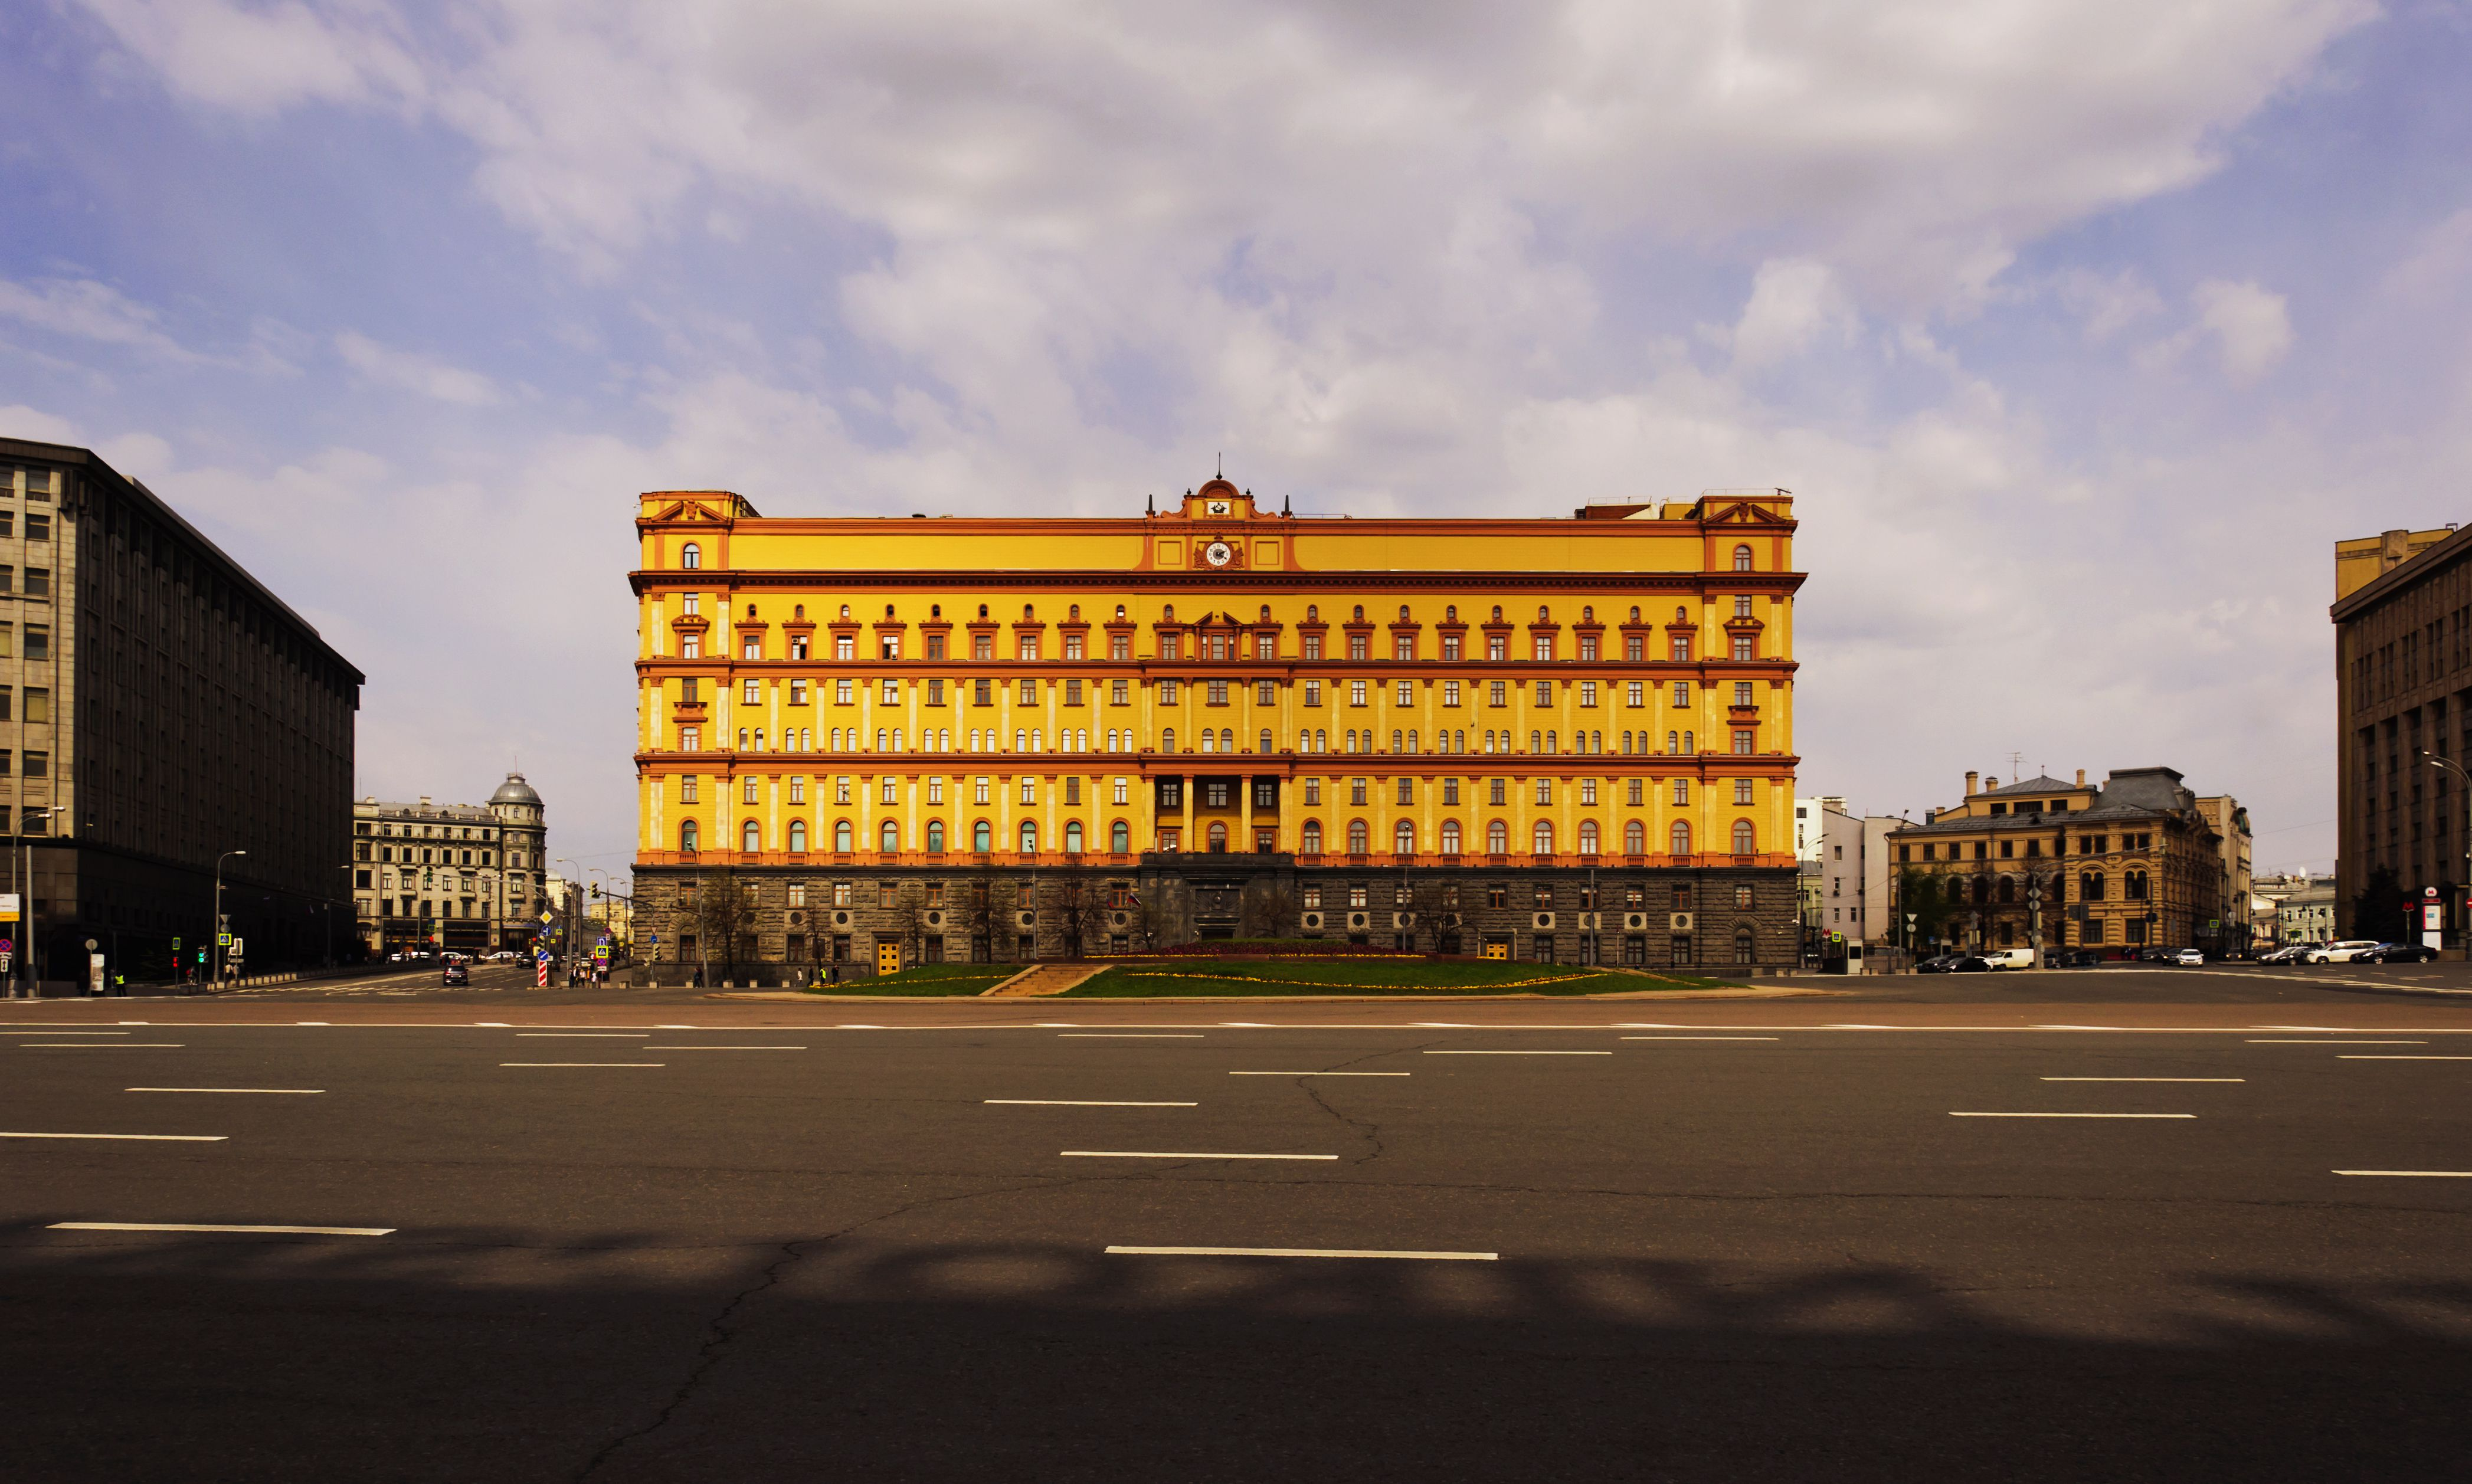 Facade building of the KGB on Lubyanka square, Moscow, Russia